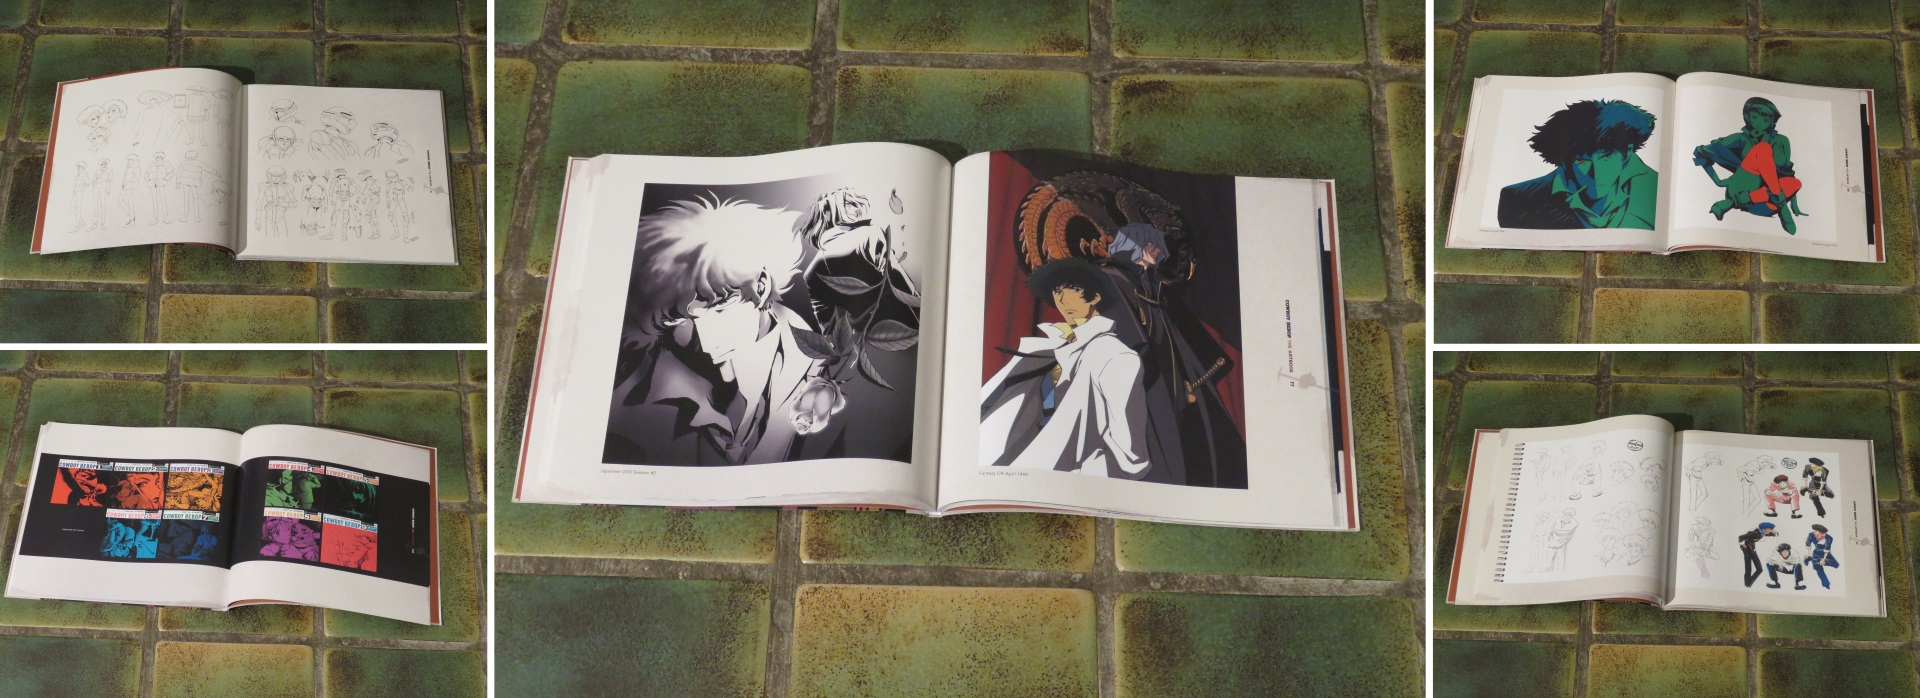 Talk About Cowboy Bebop illustration art book